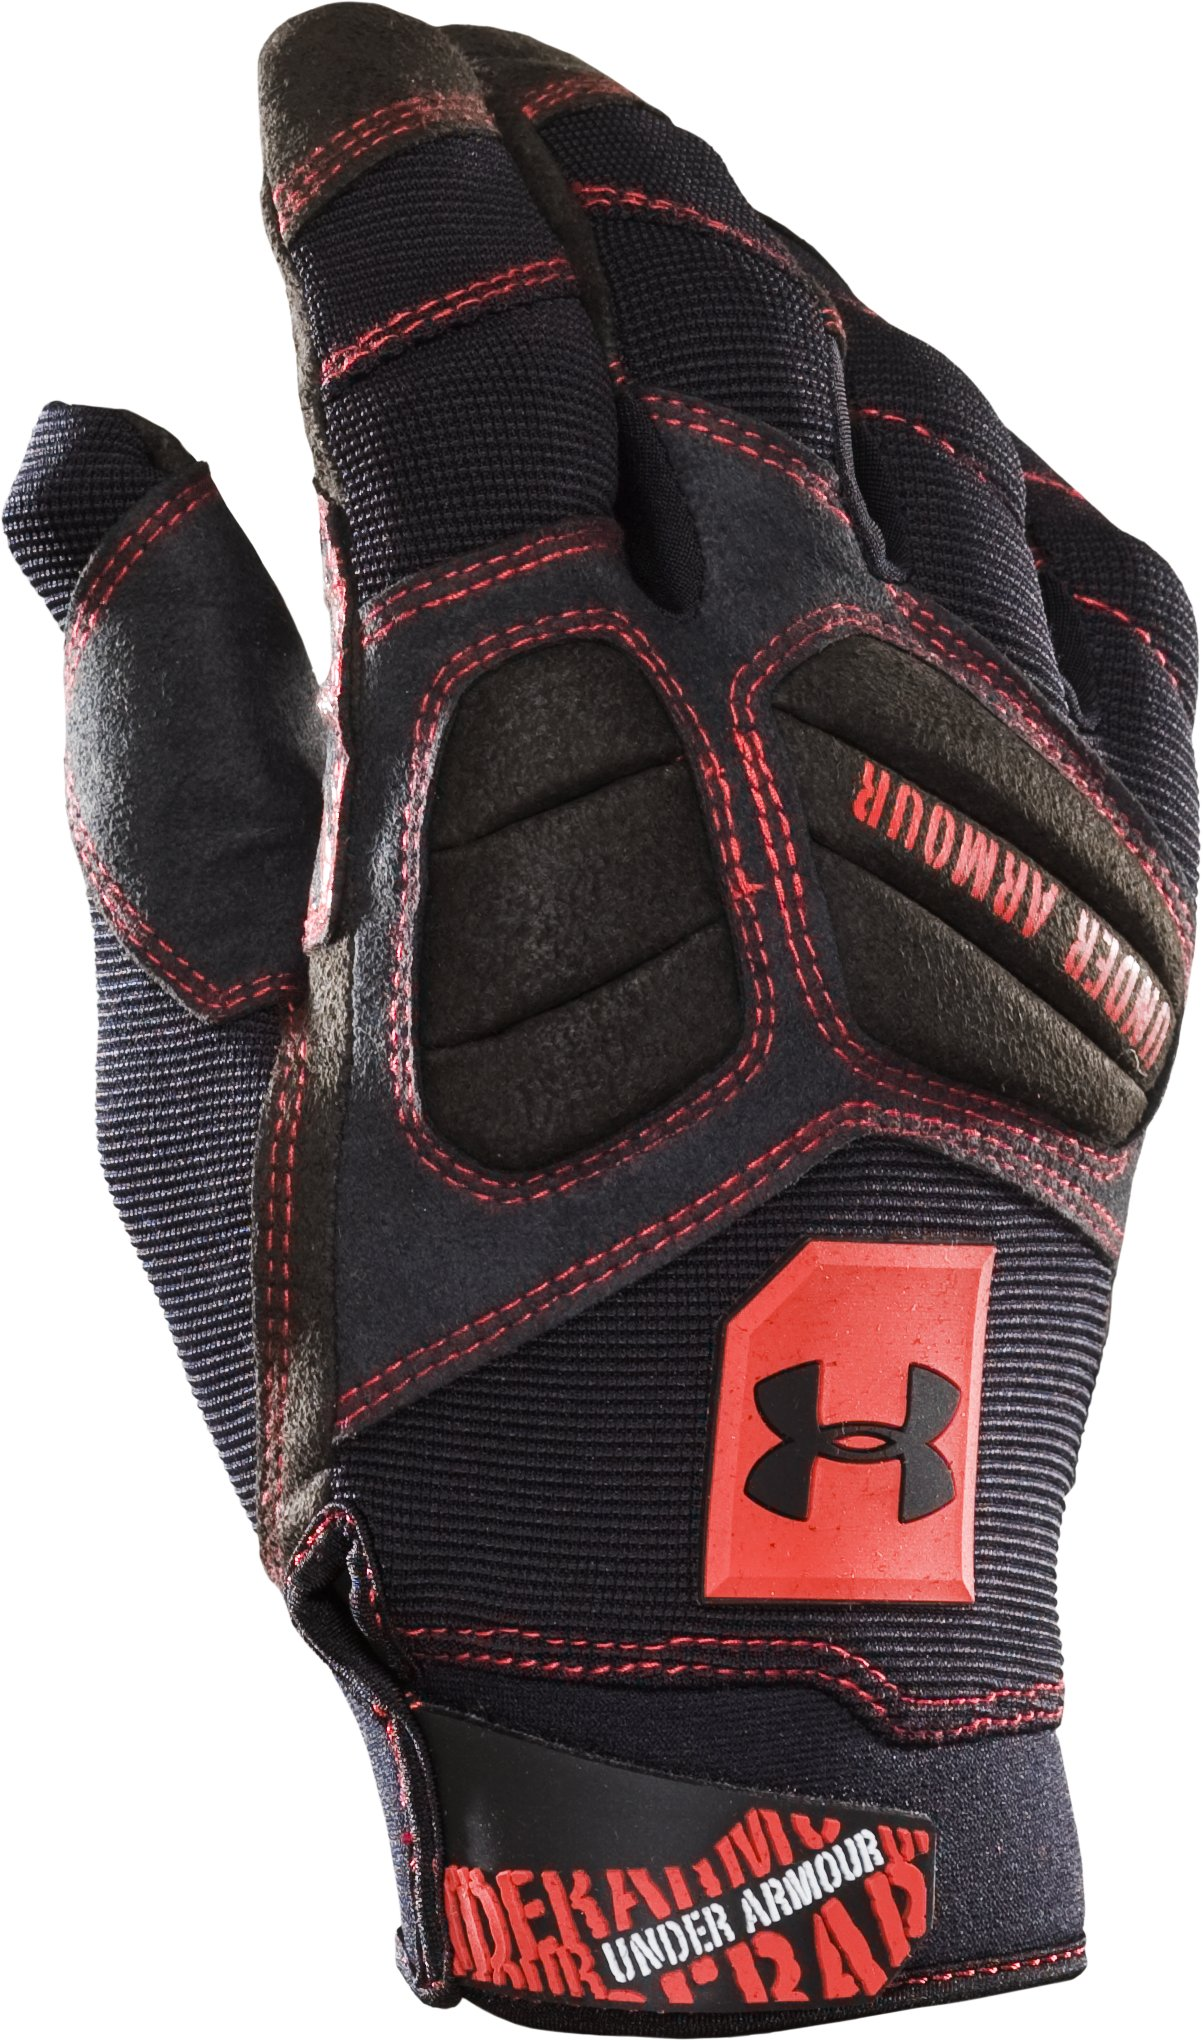 Men's High Impact Gloves, Black